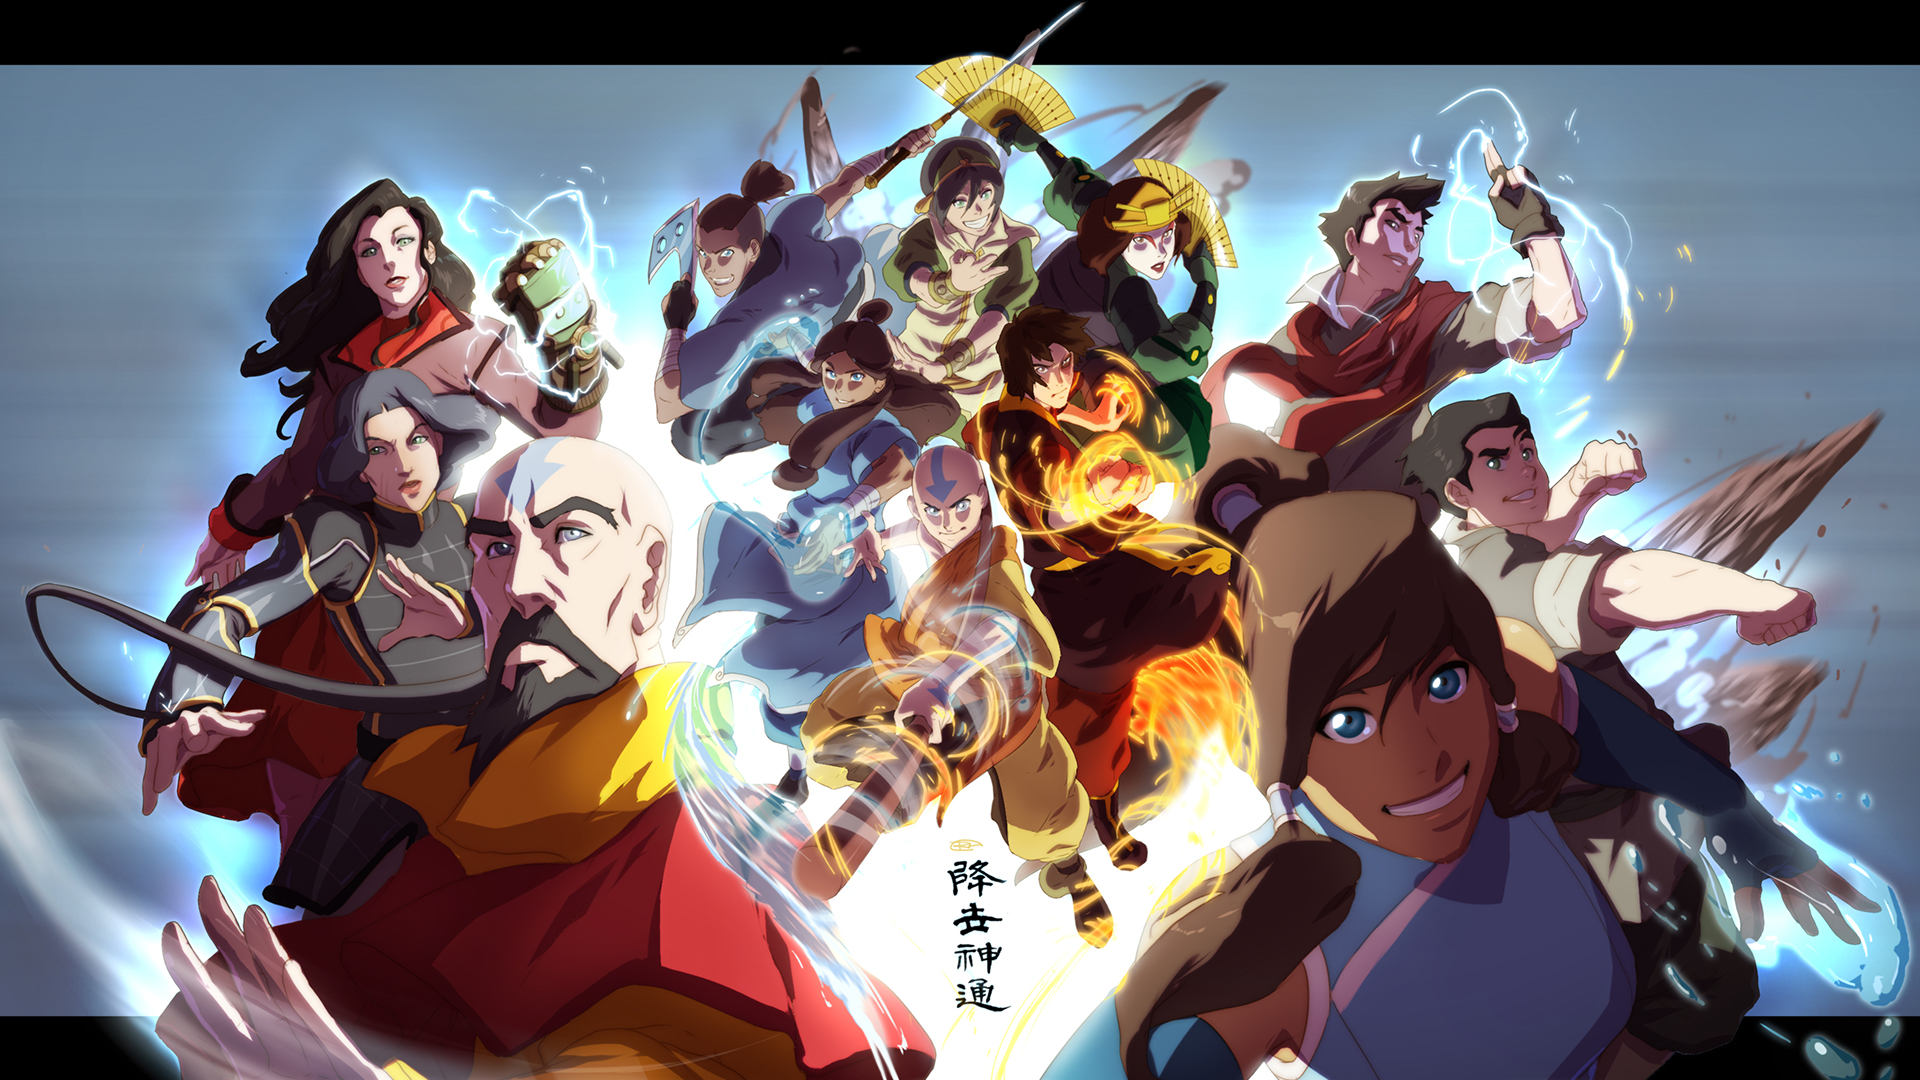 Avatar The Last Airbender Wallpapers High Quality ...